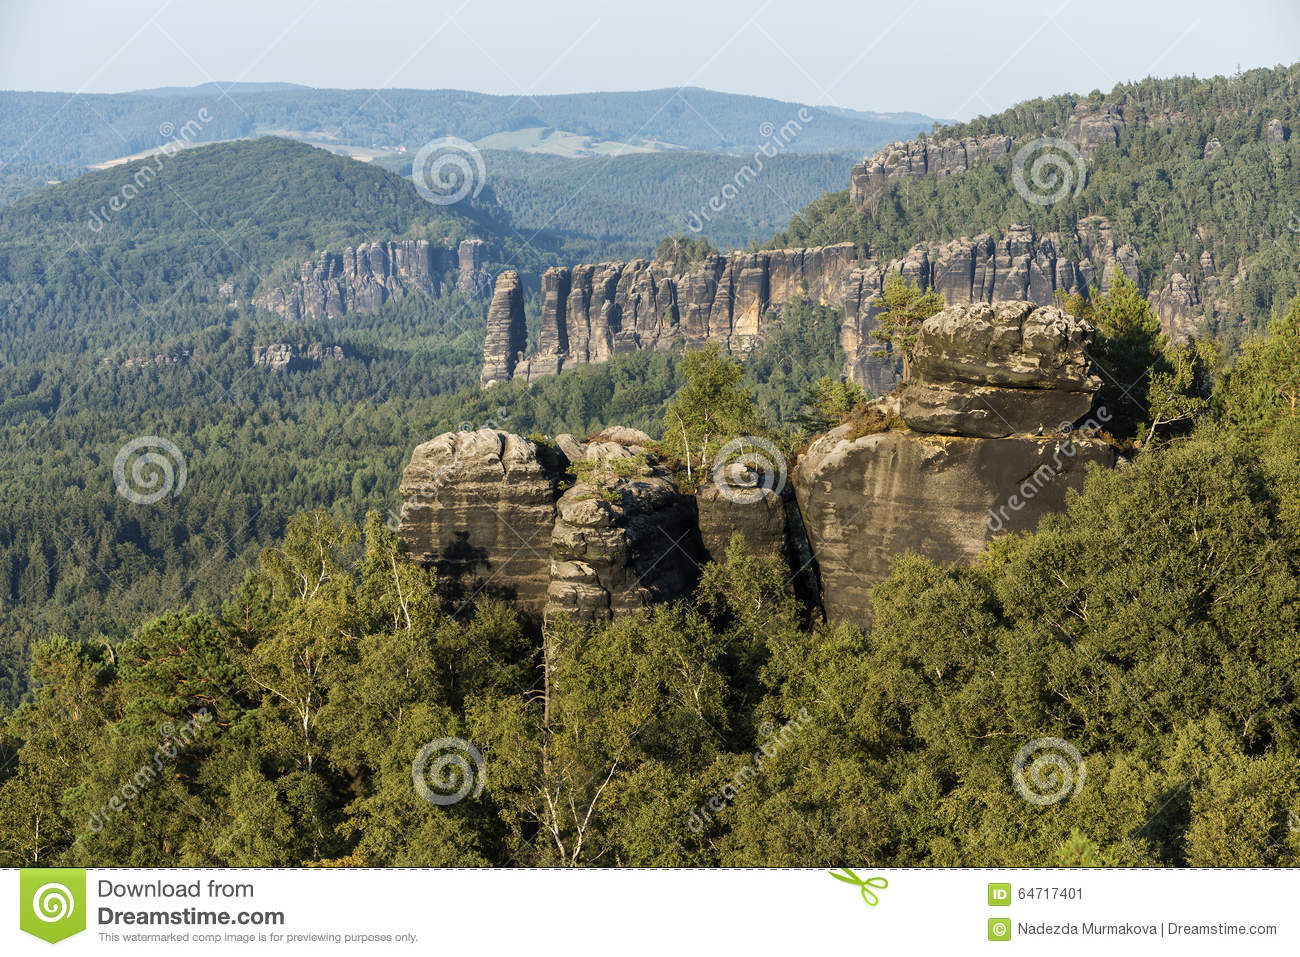 Sandstone rocks, forests and blue sky in the Germany Switzerland